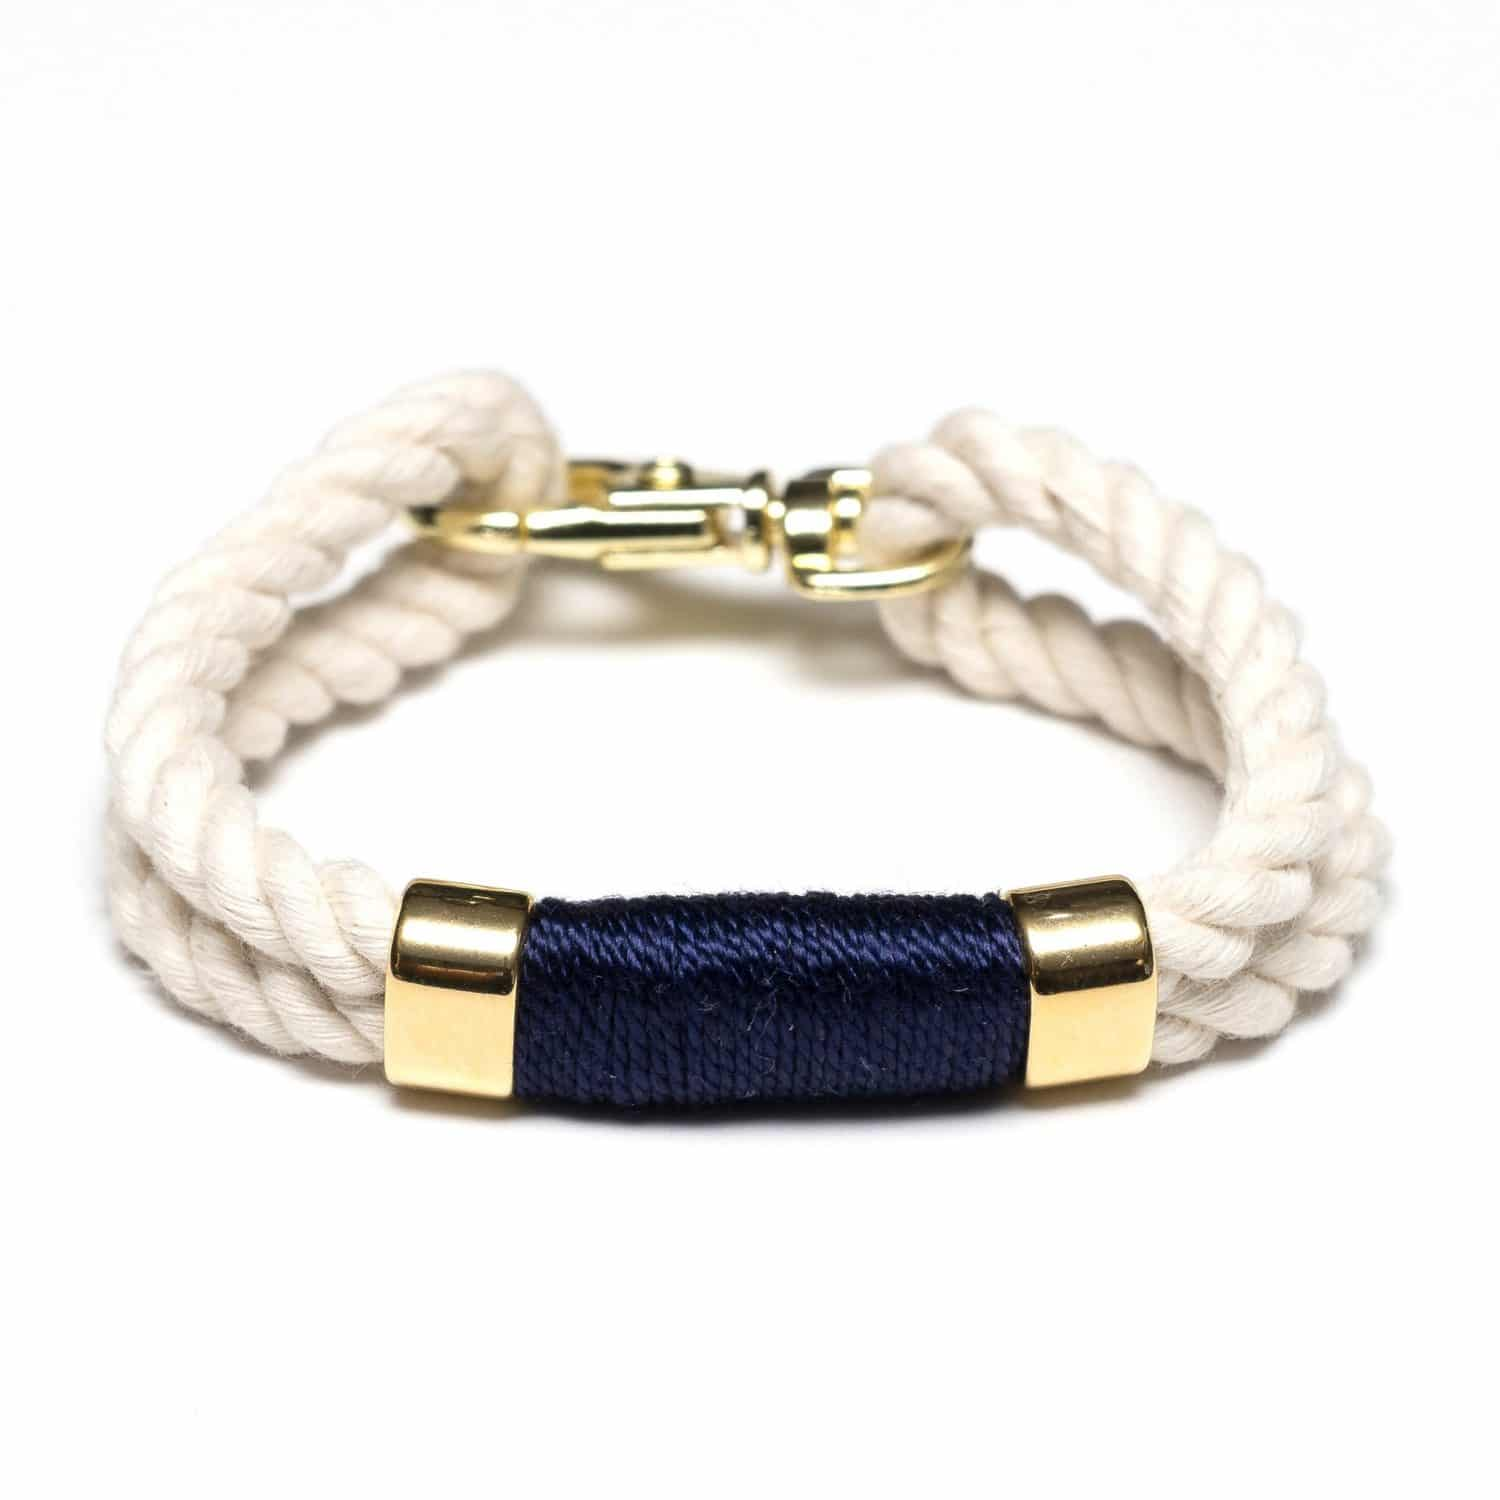 click rope bracelets nautical kattegat product bracelet watchbandit irish